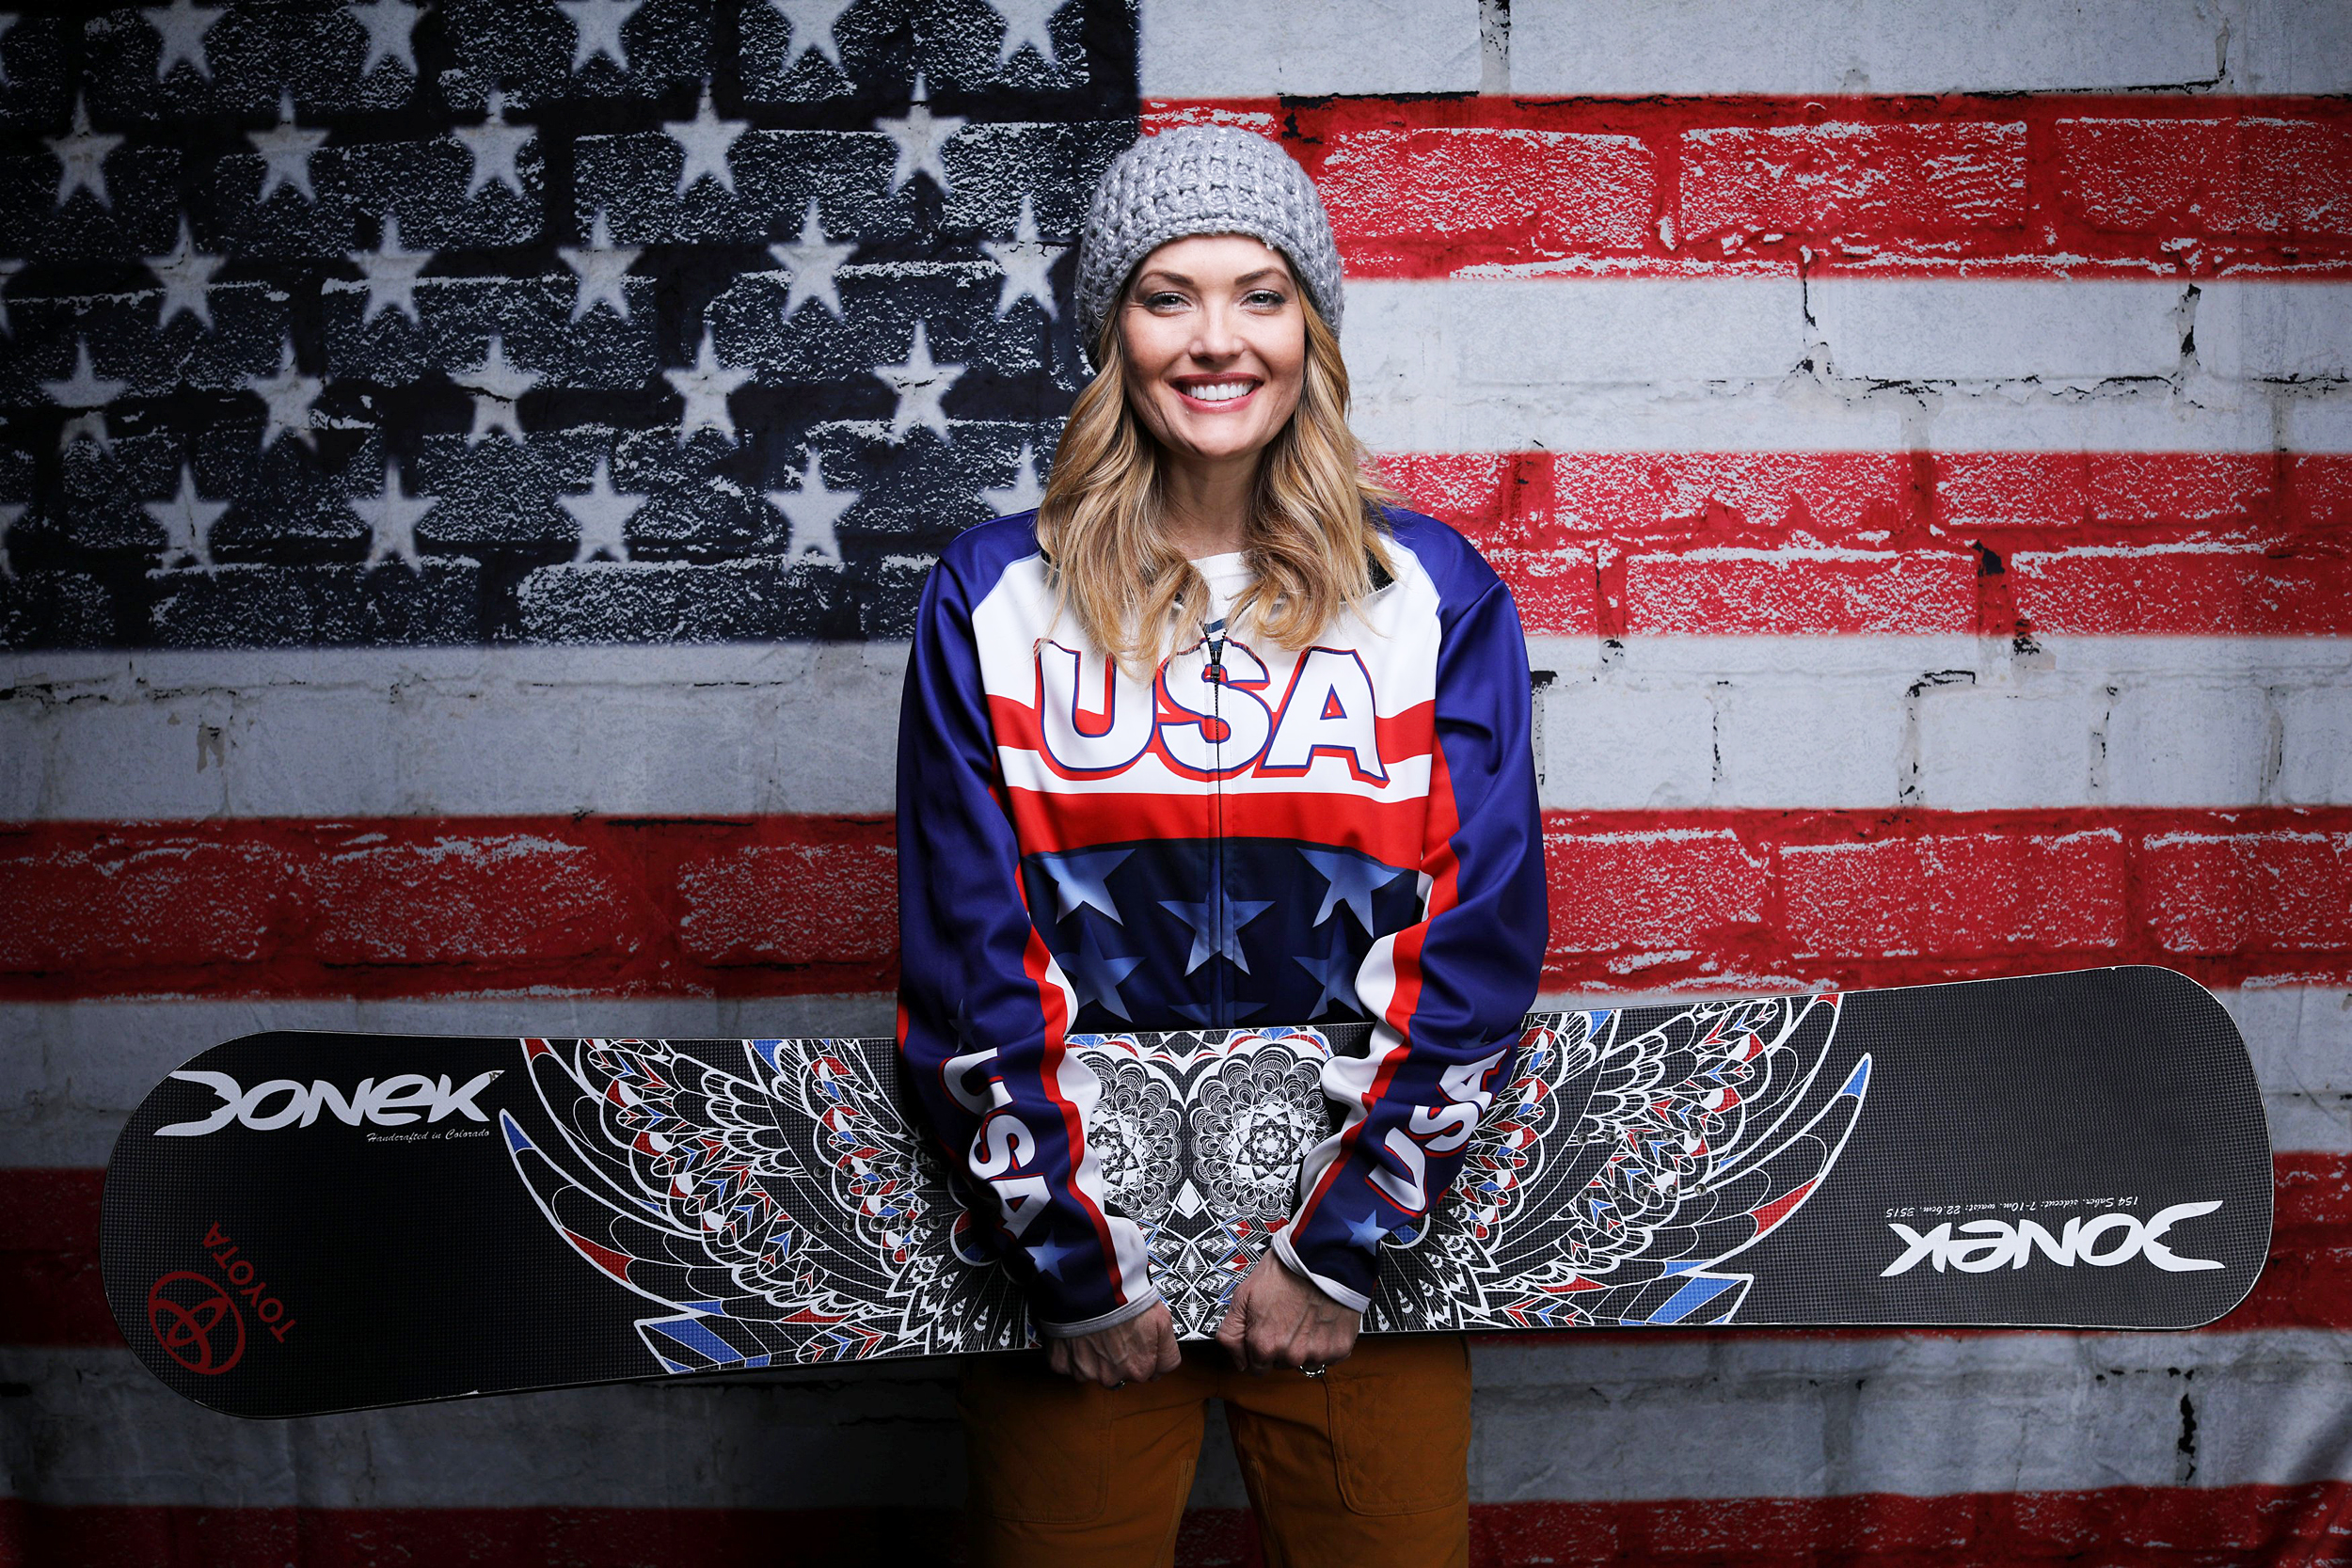 meet some of the team usa athletes preparing for the winter olympics - Biggest House In The World 2014